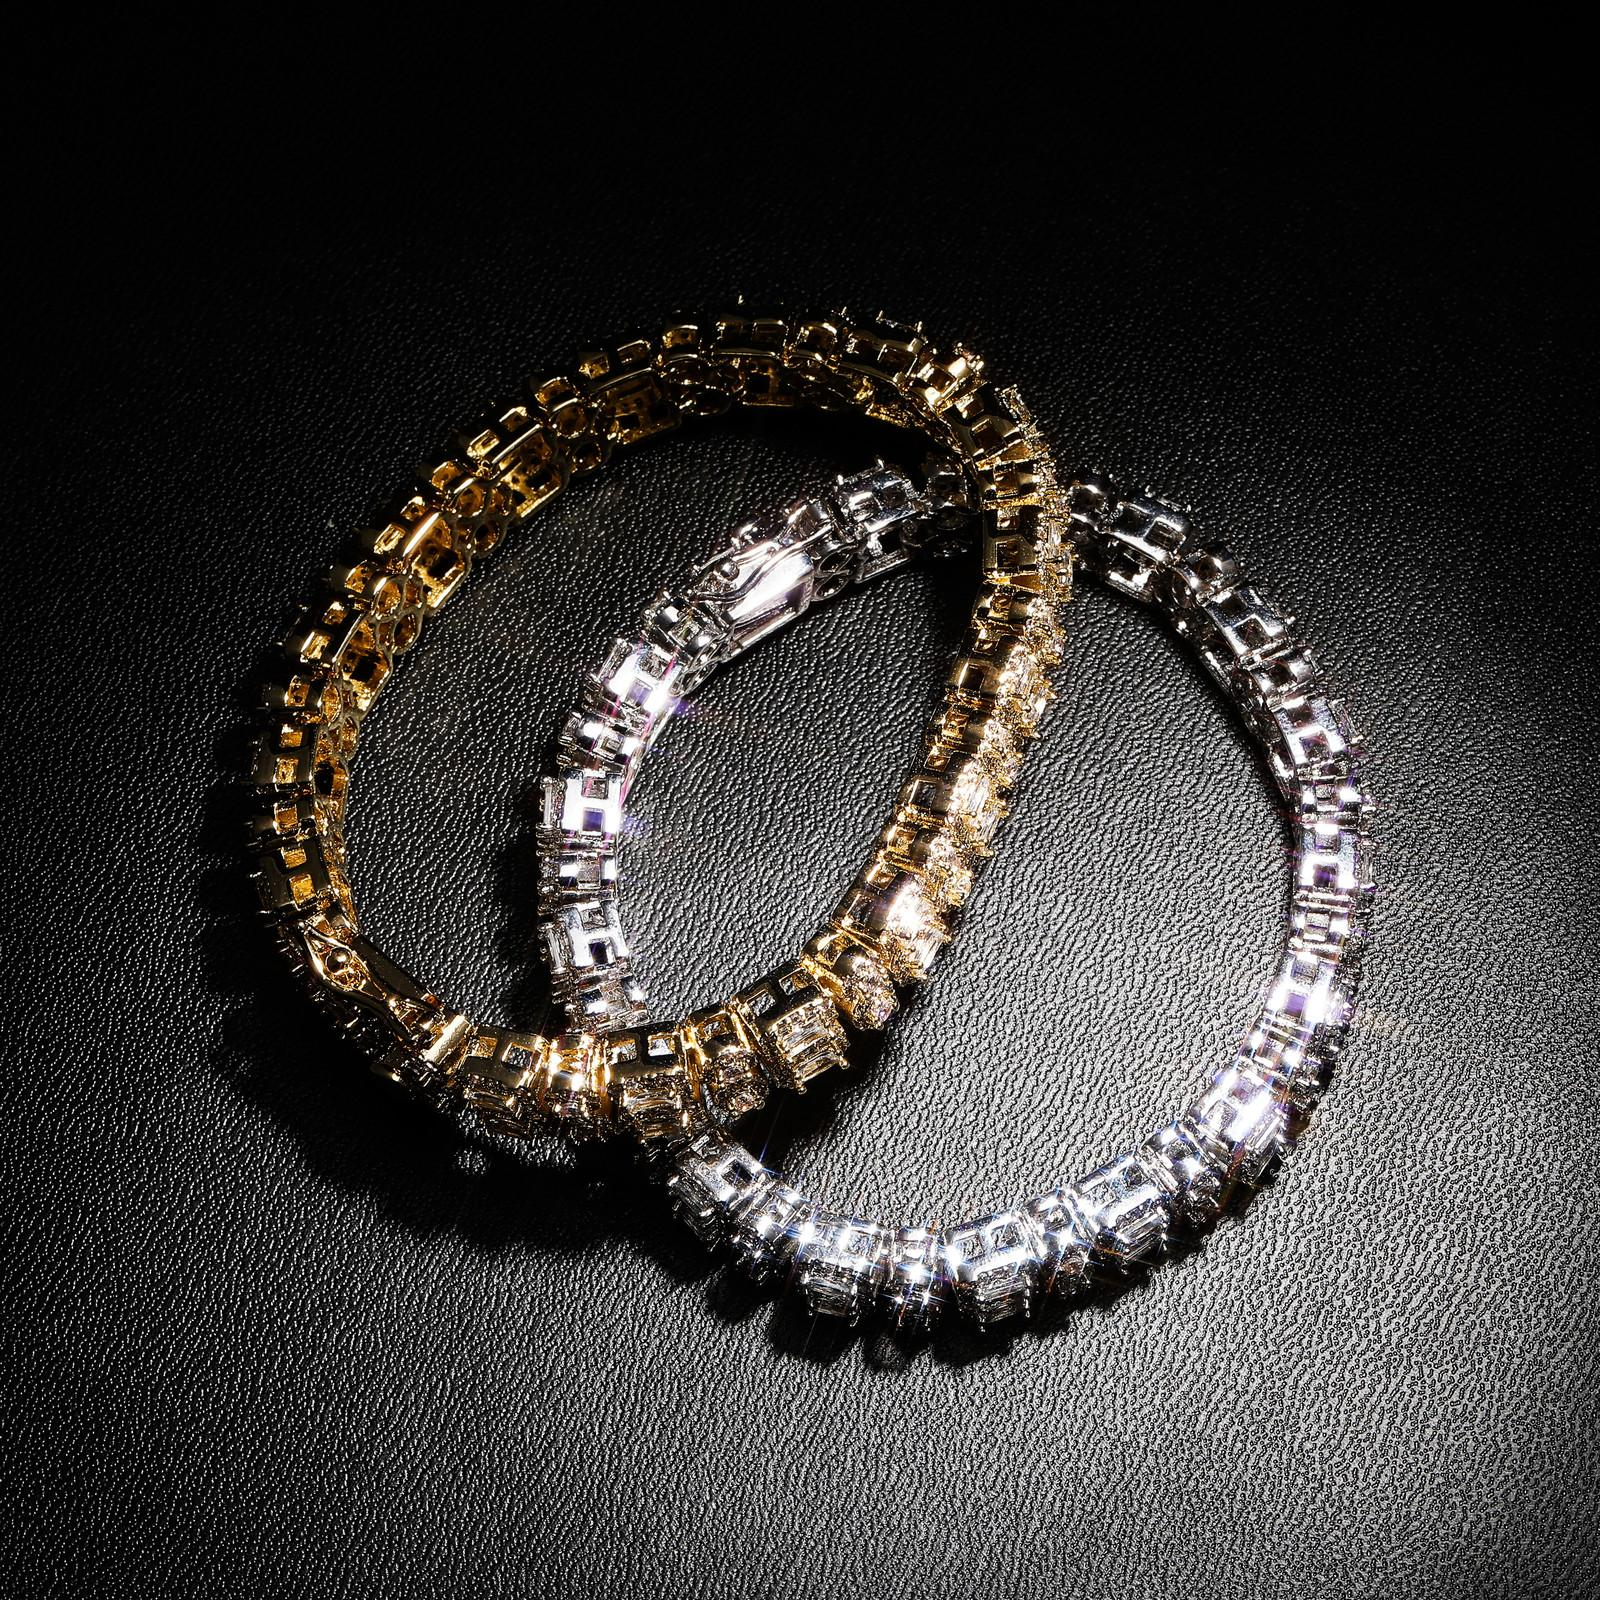 New Charm Hip Hop 10mm Doble fila Zircon Round Square Buttonhead Iced Out Personality Gold Bareles Bangle Pulsera B1205